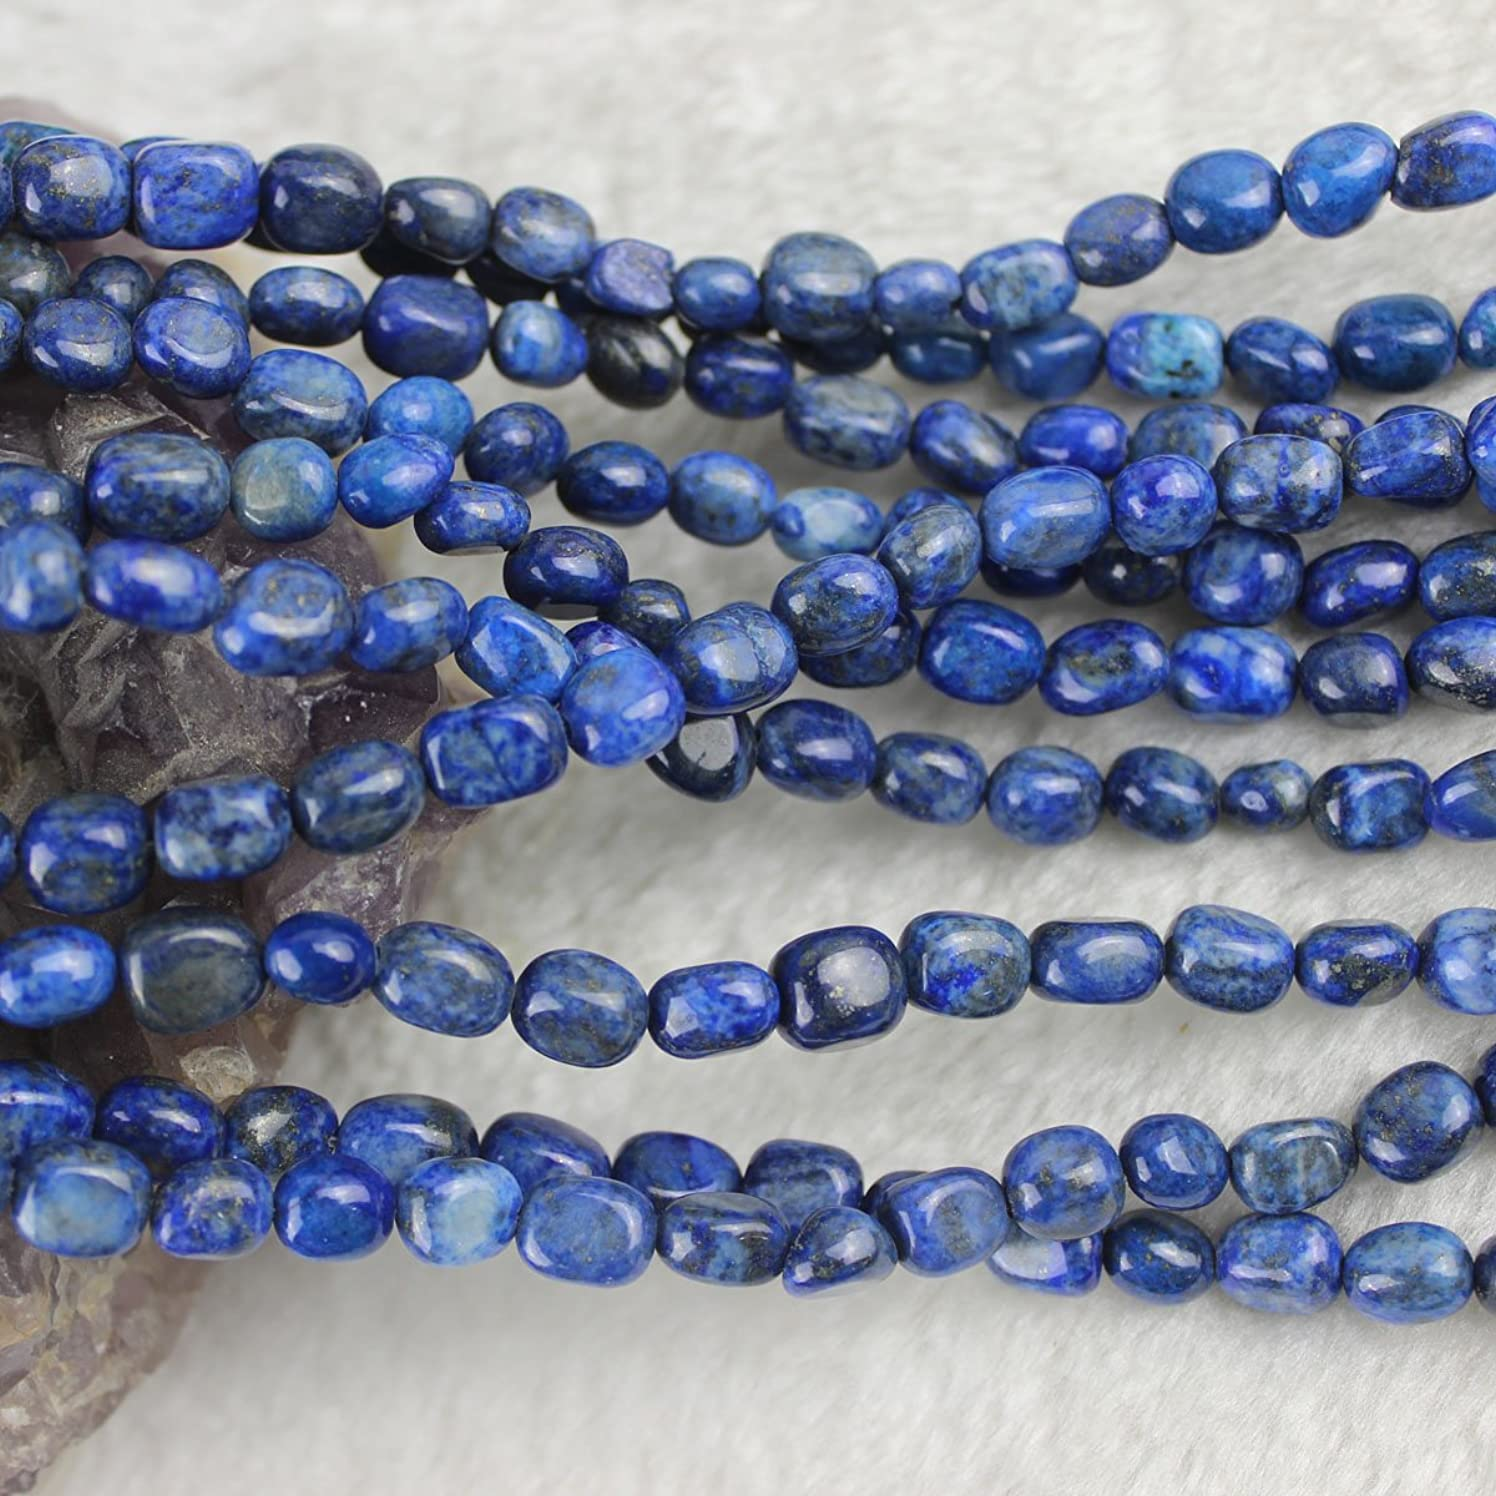 6-7mm Freeform Natural Lapis Lazuli Beads Loose Gemstone Beads for Jewelry Making Strand 15 Inch